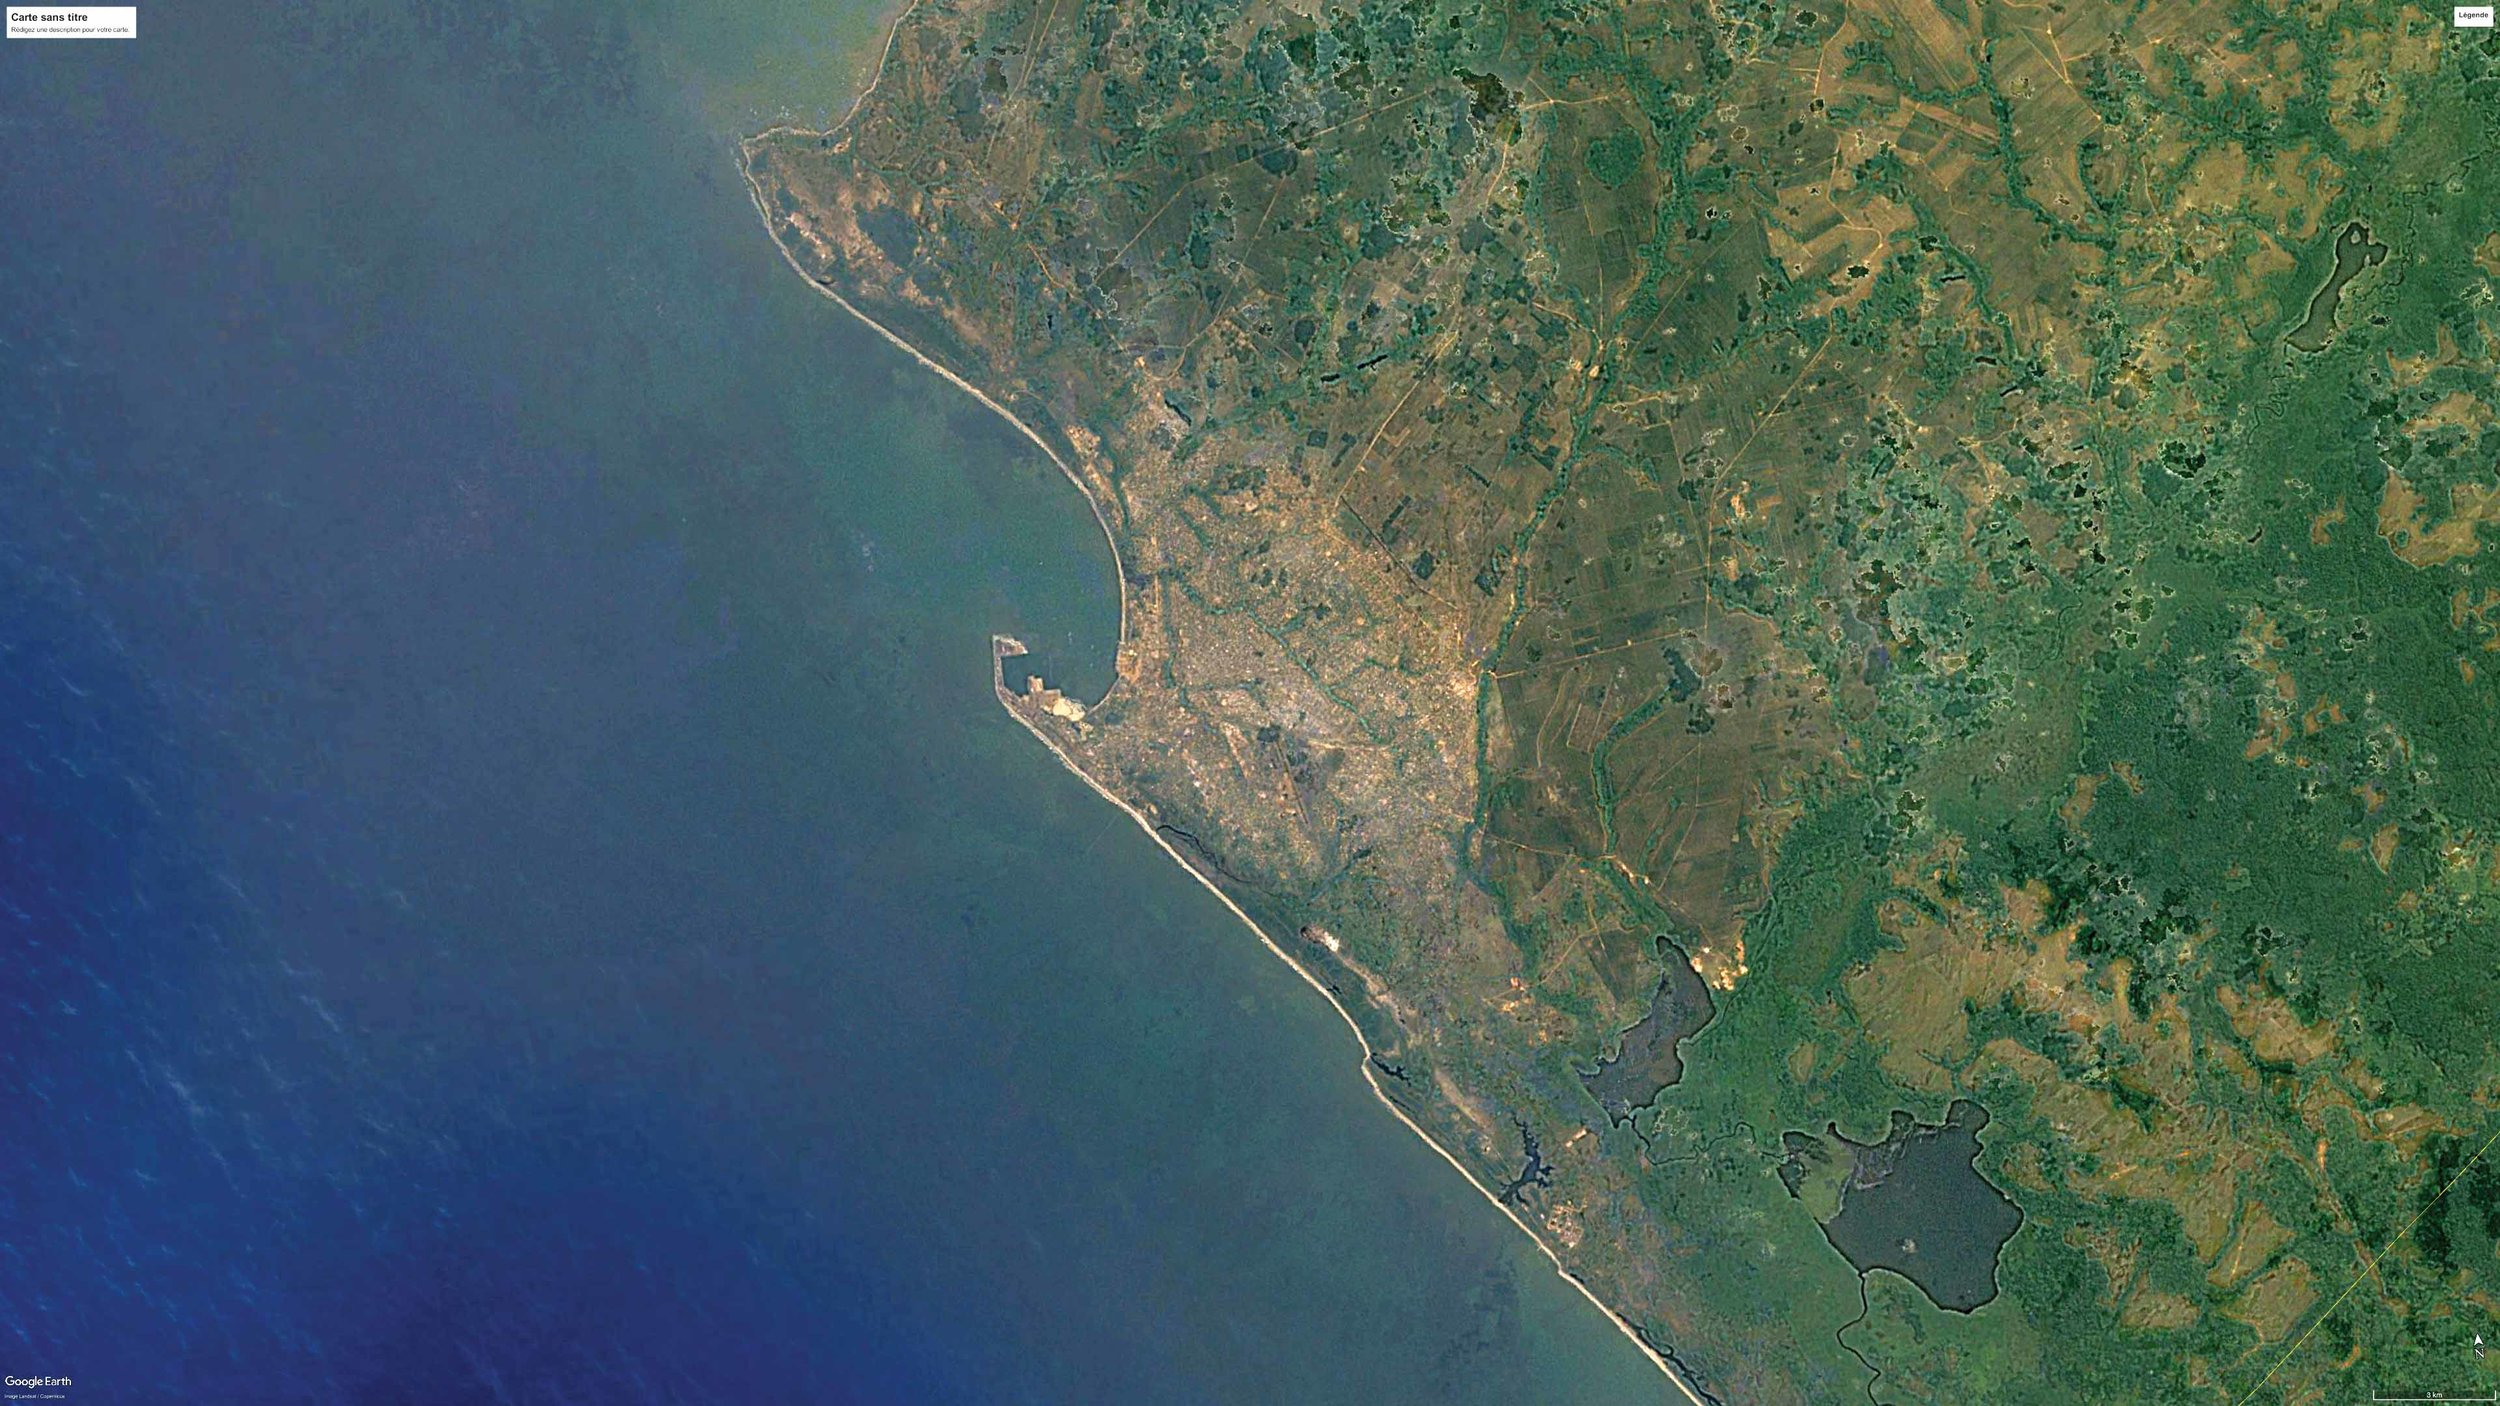 SATELLITE VIEW OF POINTE-NOIRE, REPUBLIC OF THE CONGO, 1990